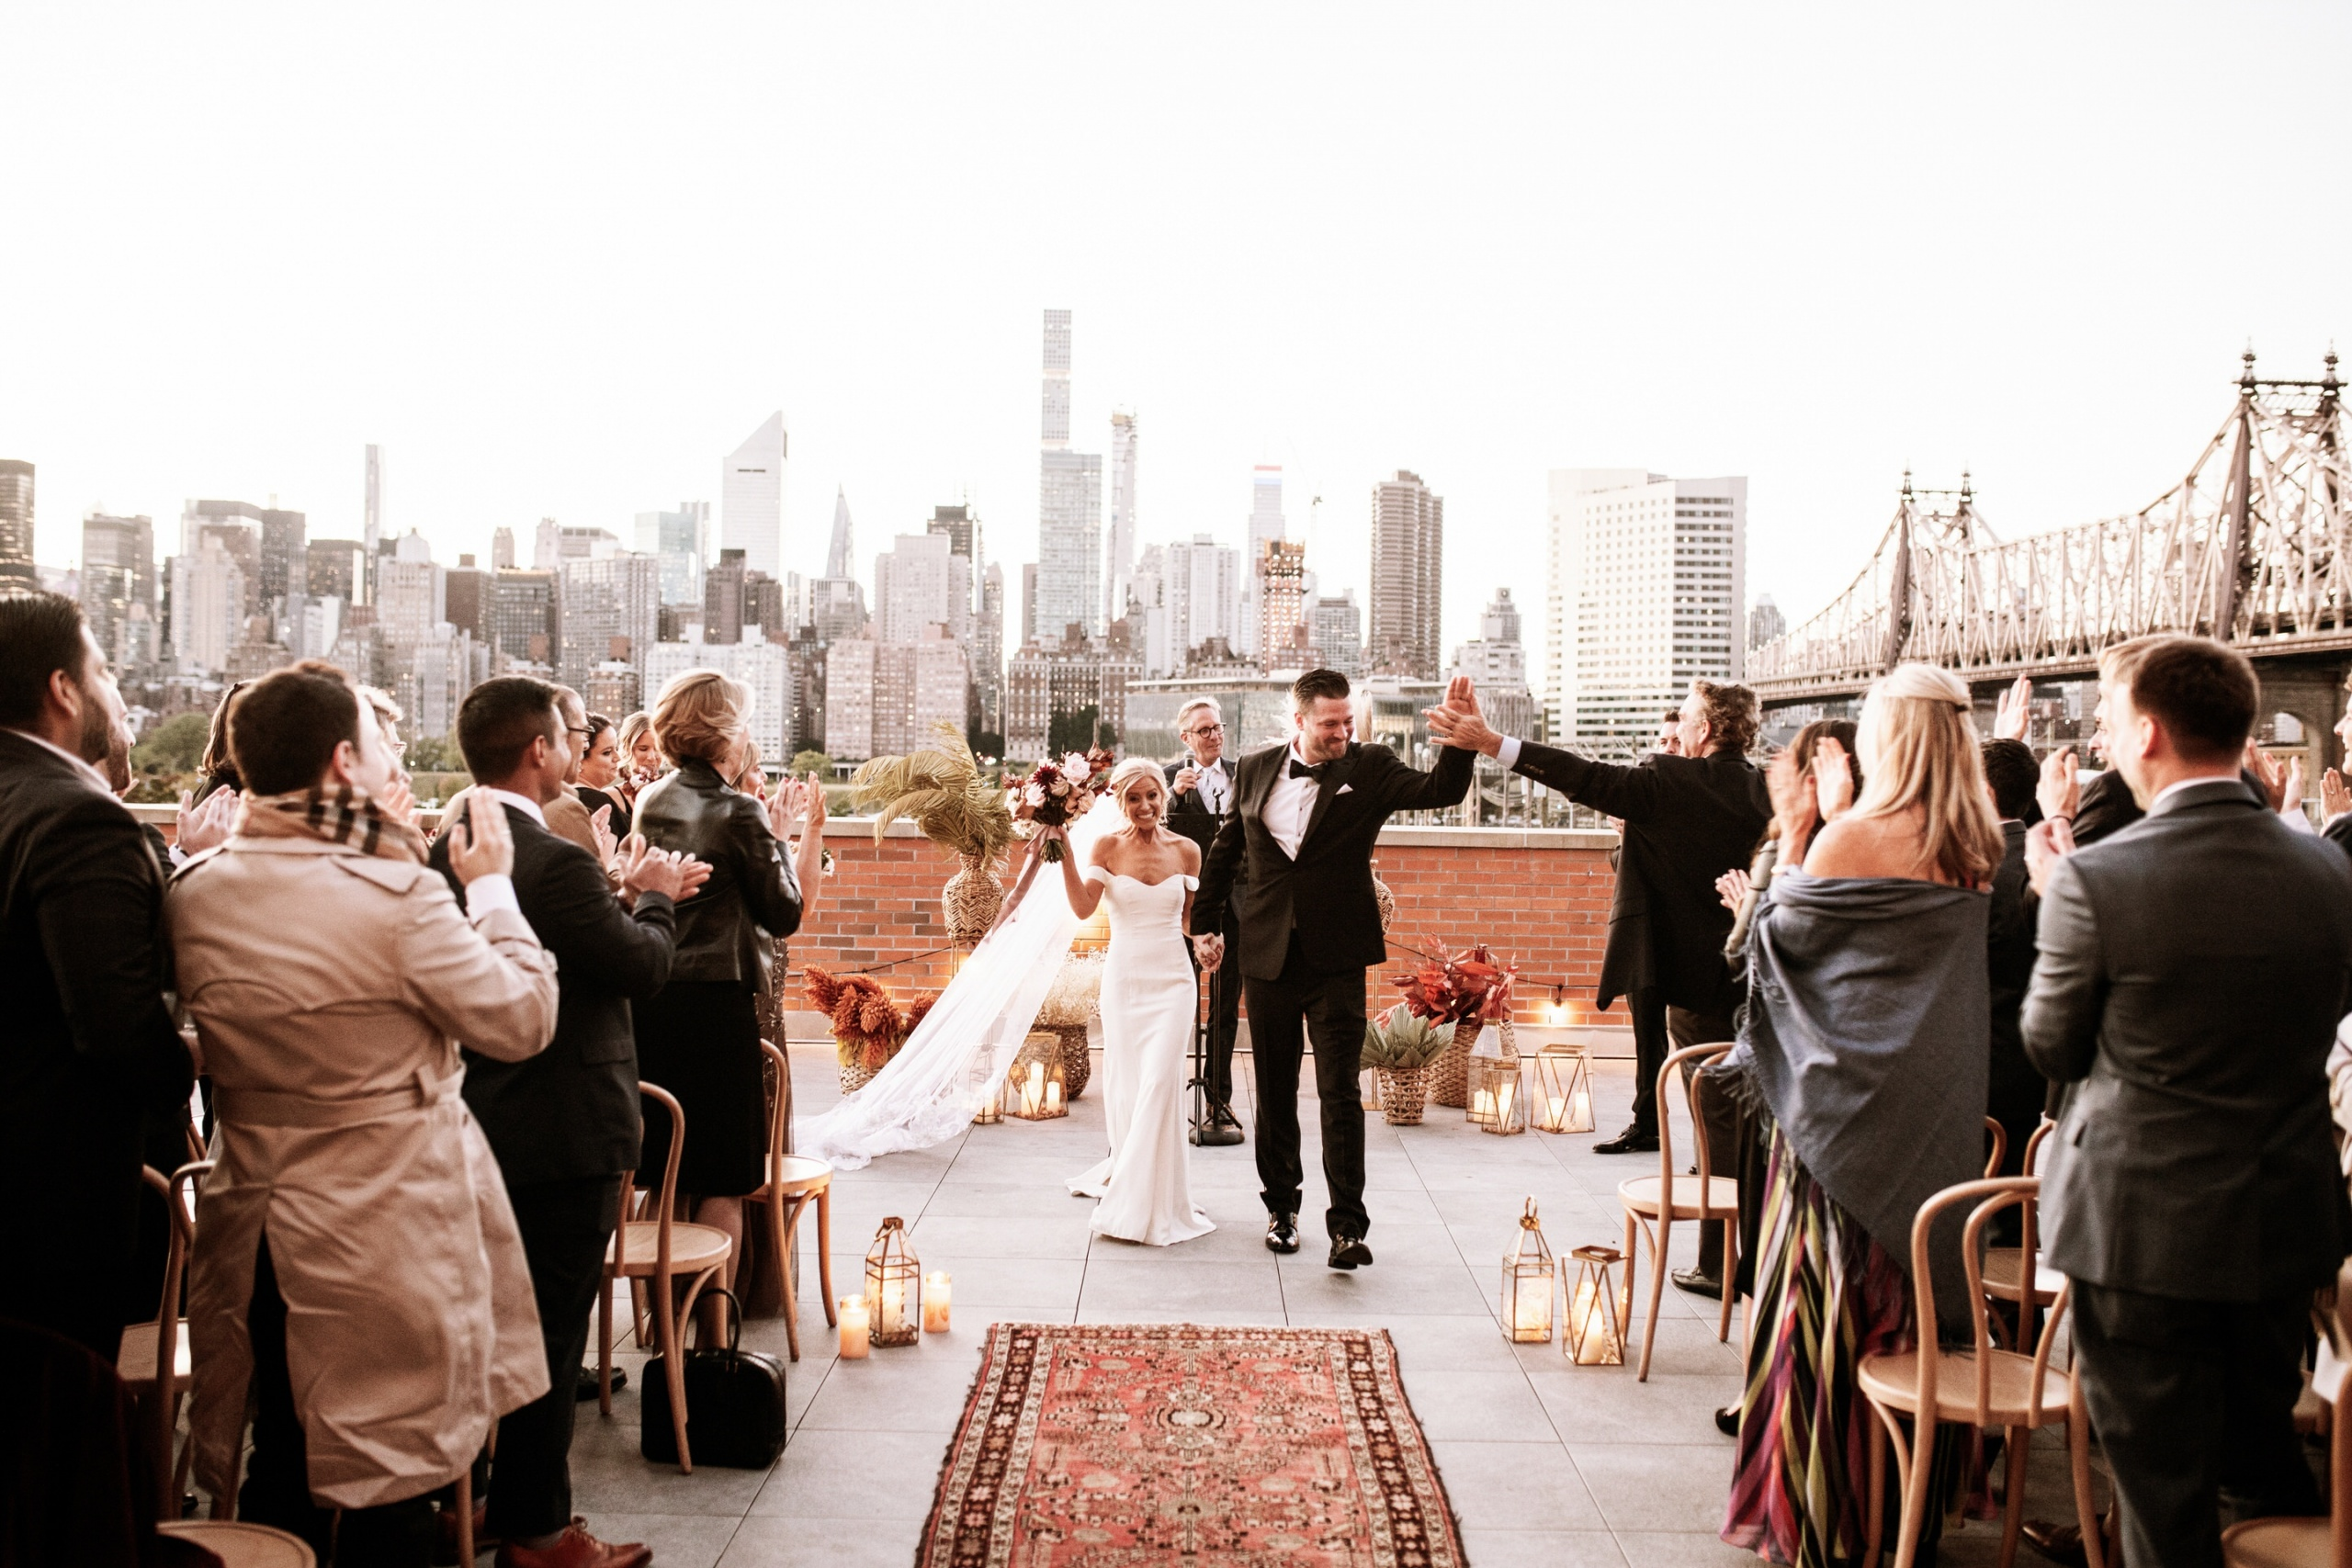 A newly married couple happily walks down the aisle with NYC skyline in the background